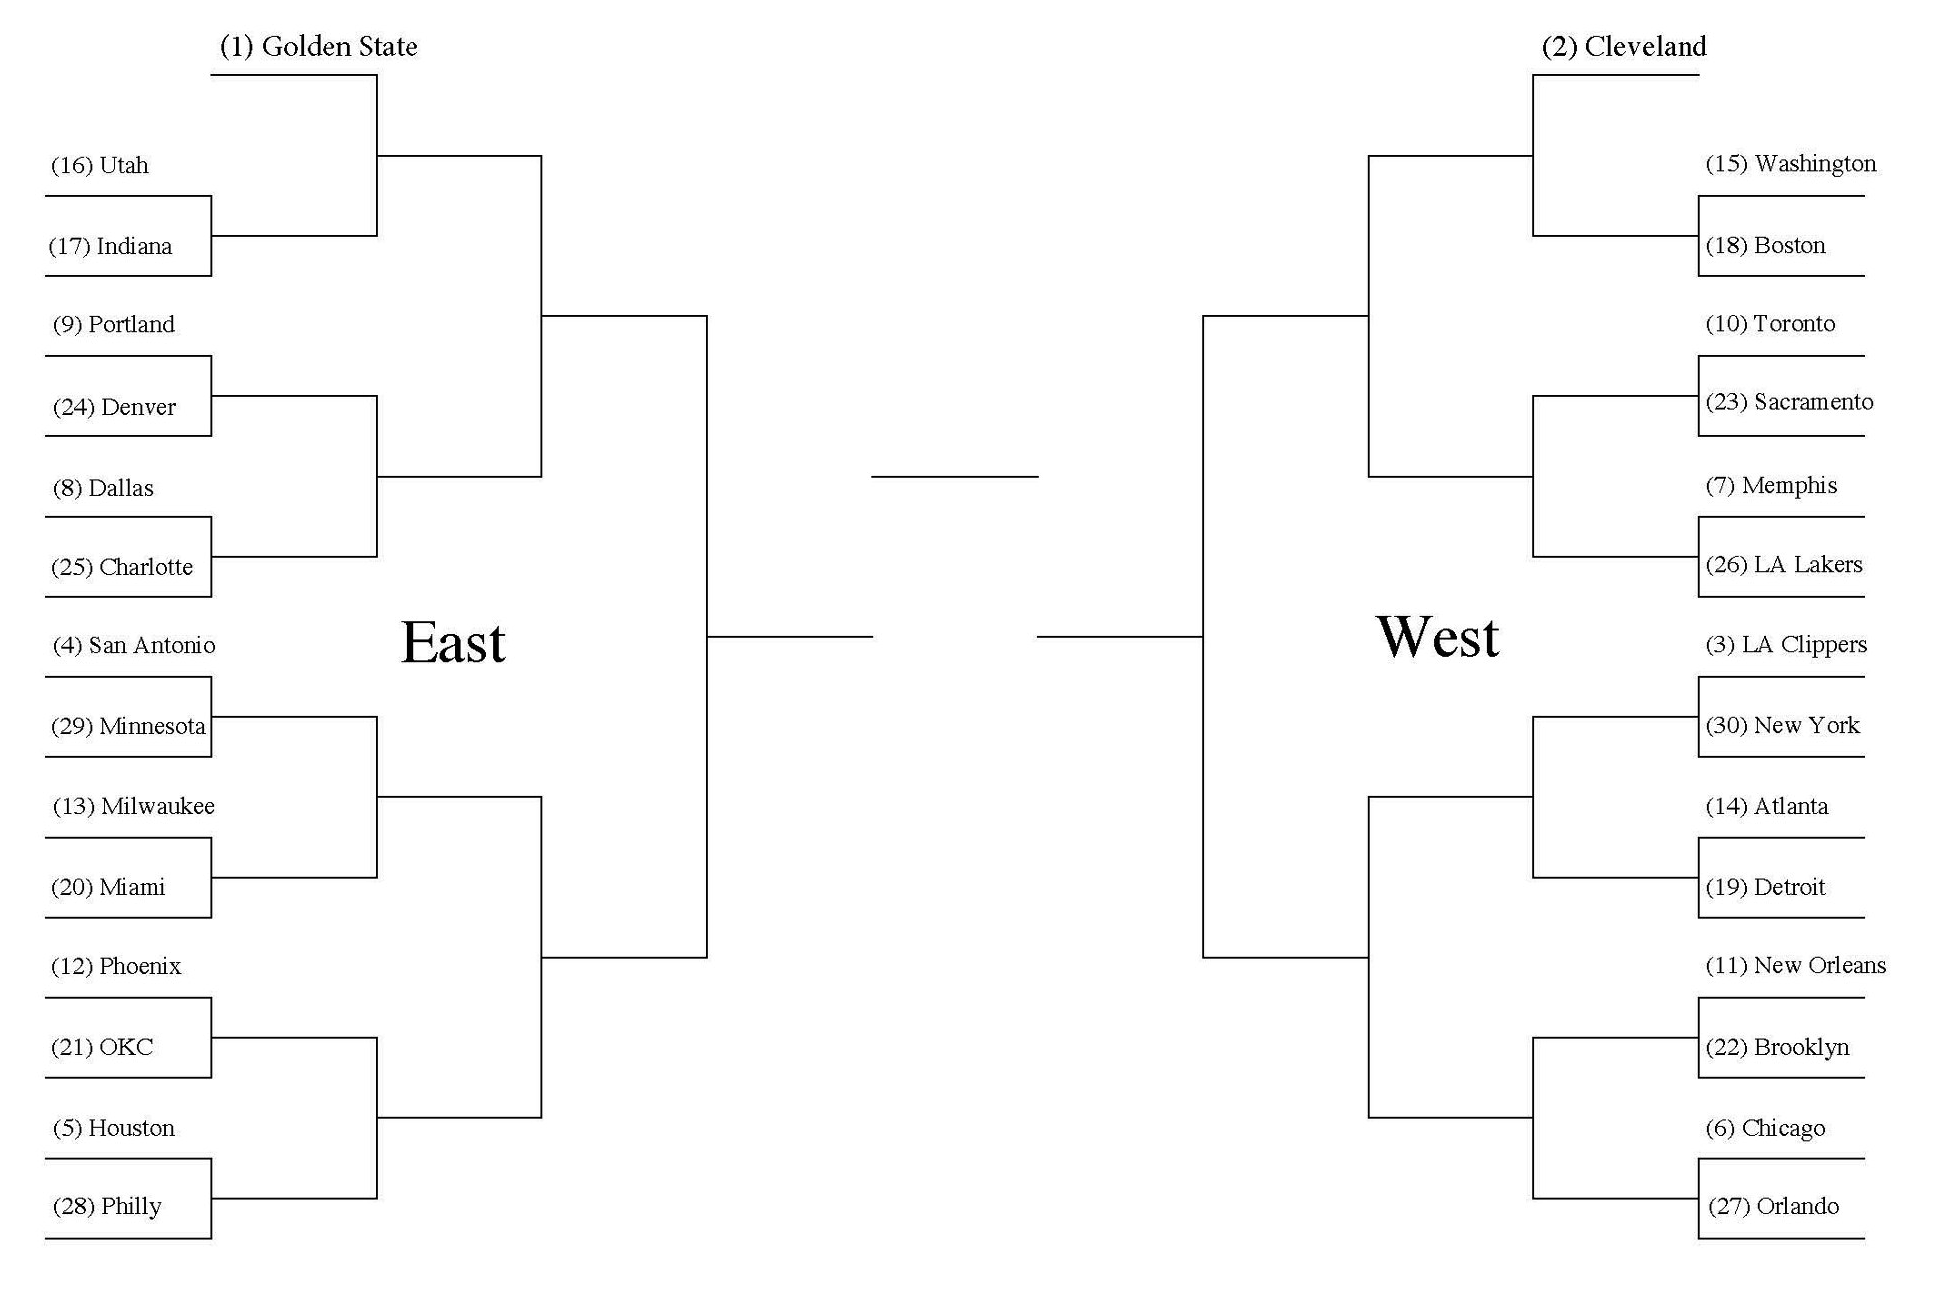 30 man single elimination bracket